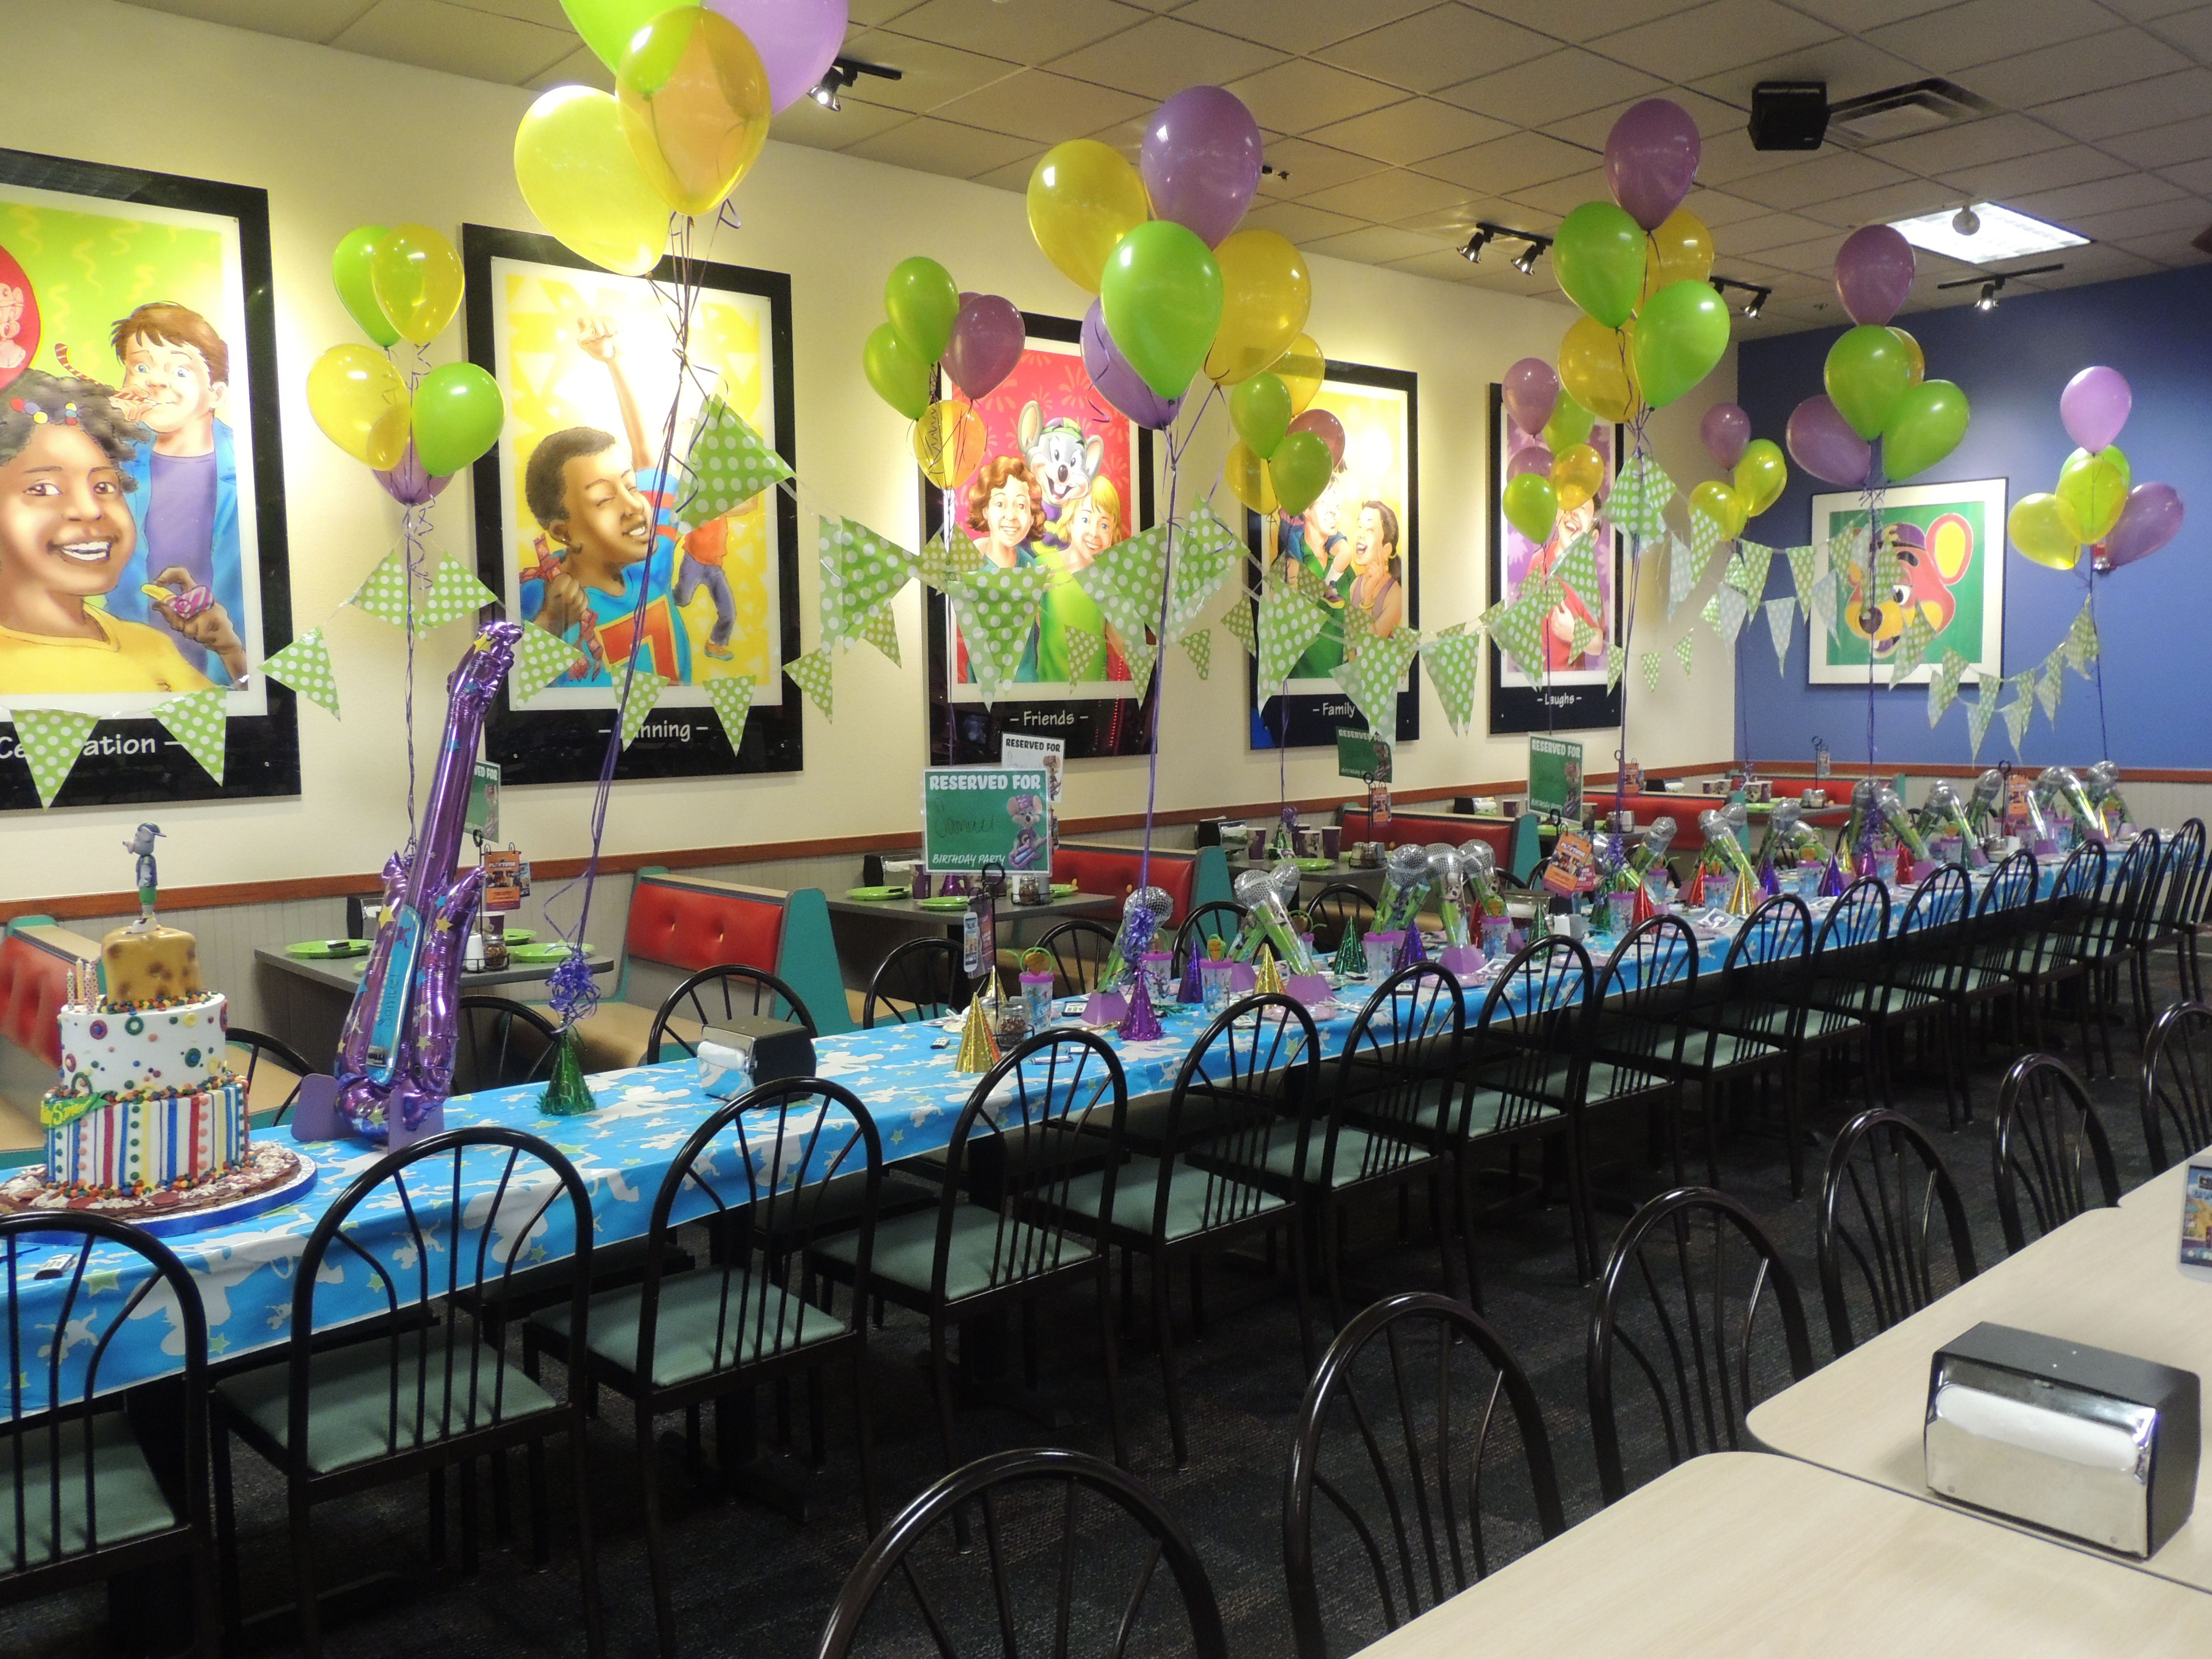 Chuck E Cheese Table Birthday Party Pinterest Cheese table